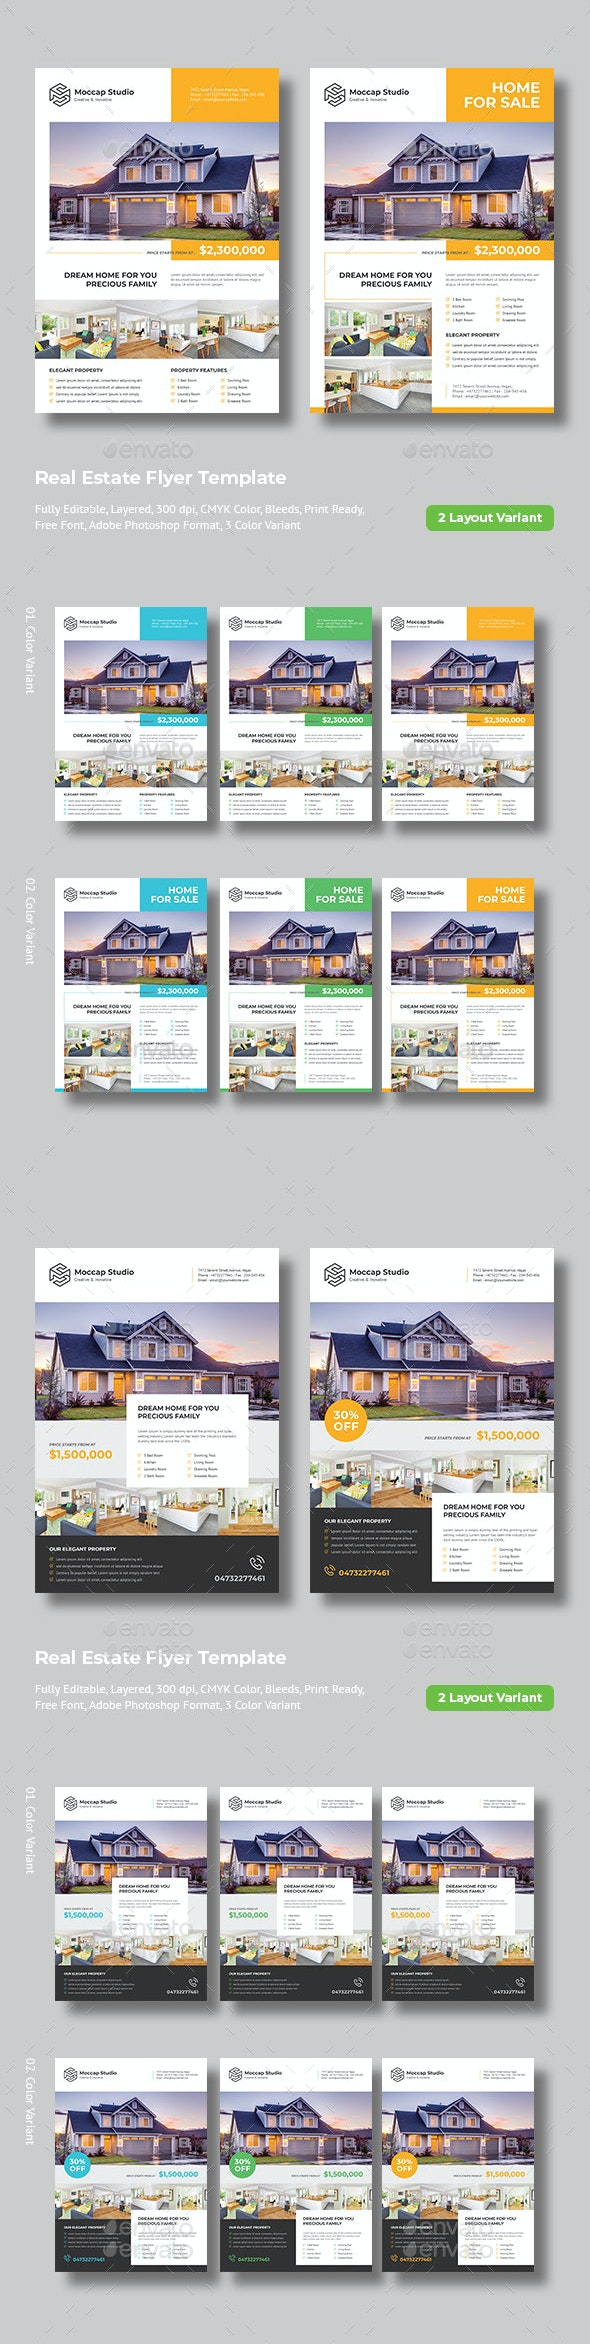 Real Estate Flyer (Bundle 01) - Flyers Print Templates